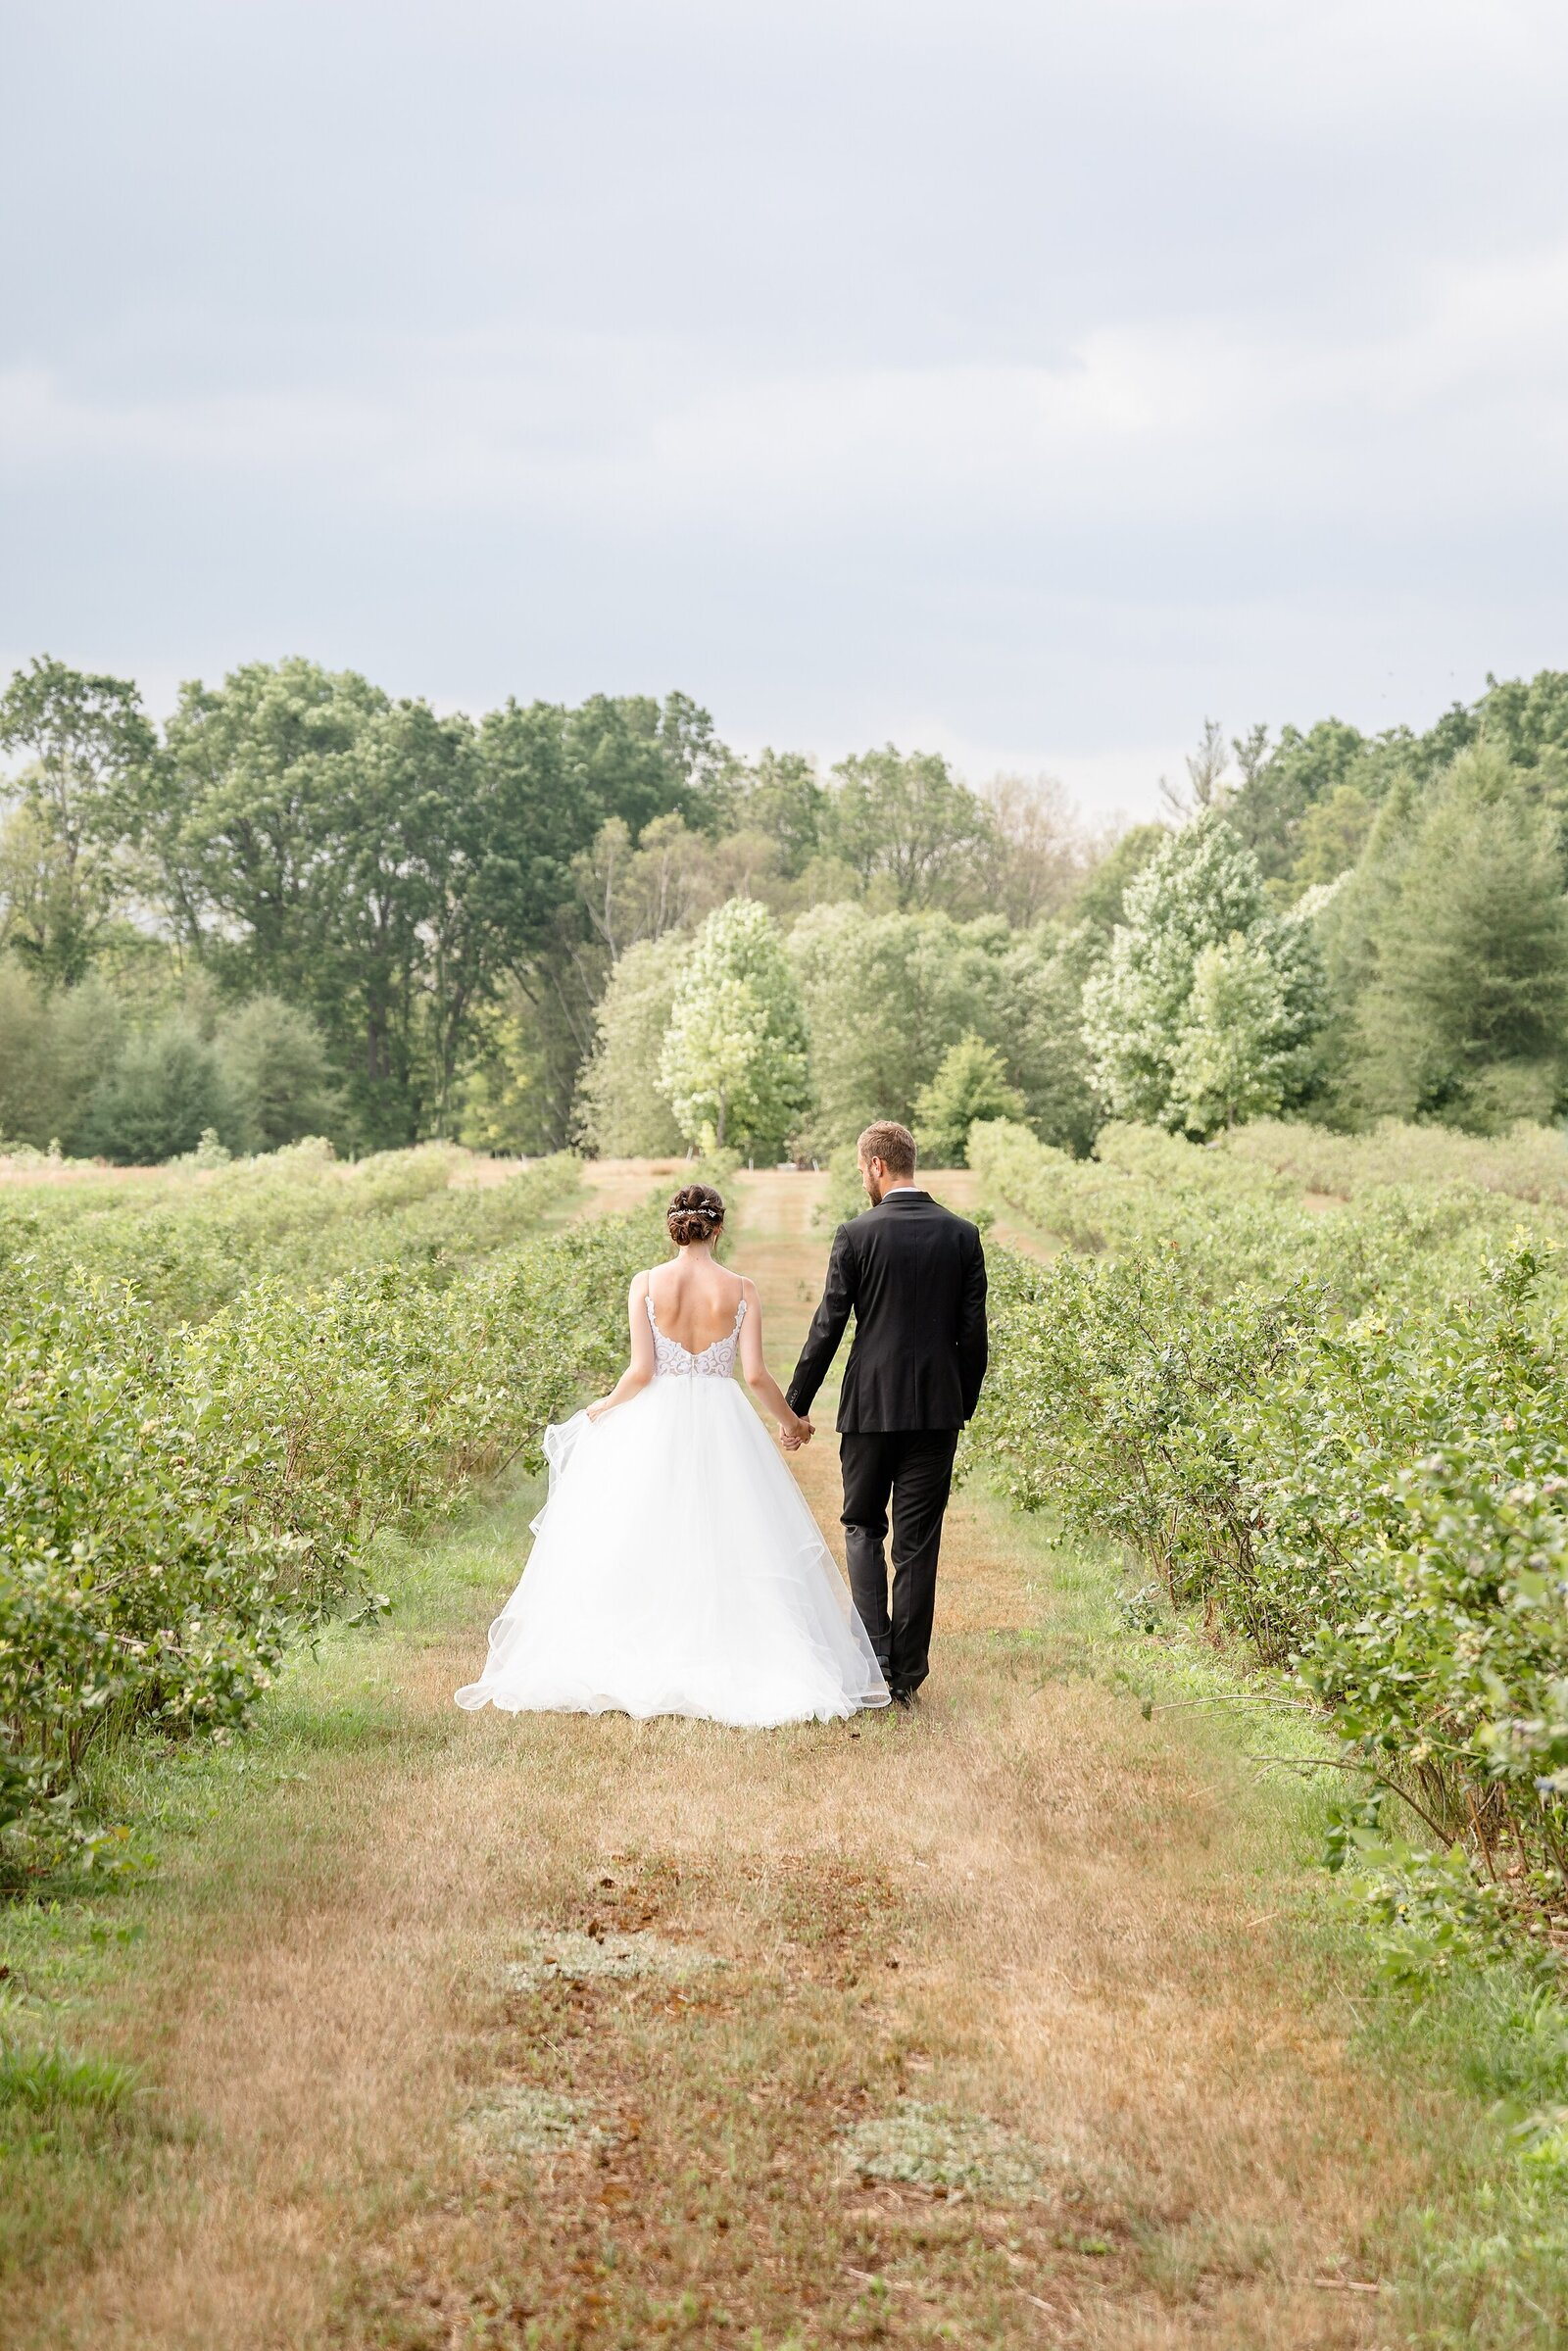 Couple-walks-holding-hands-between-rows-of-blueberries-at-arrowwood-farms-on-their-wedding-day